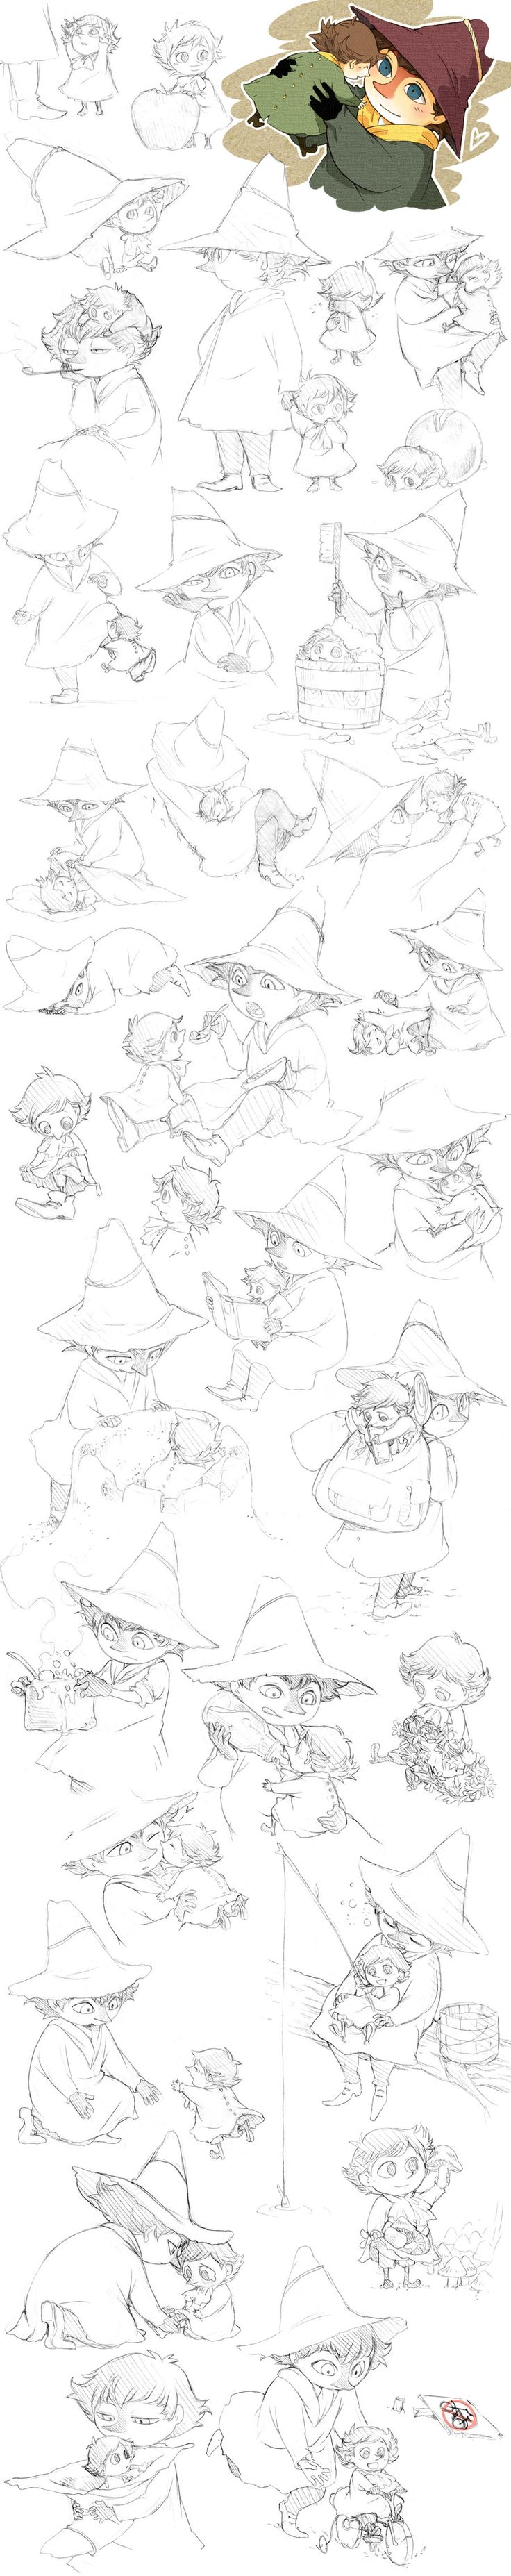 Snufkin and Joxter